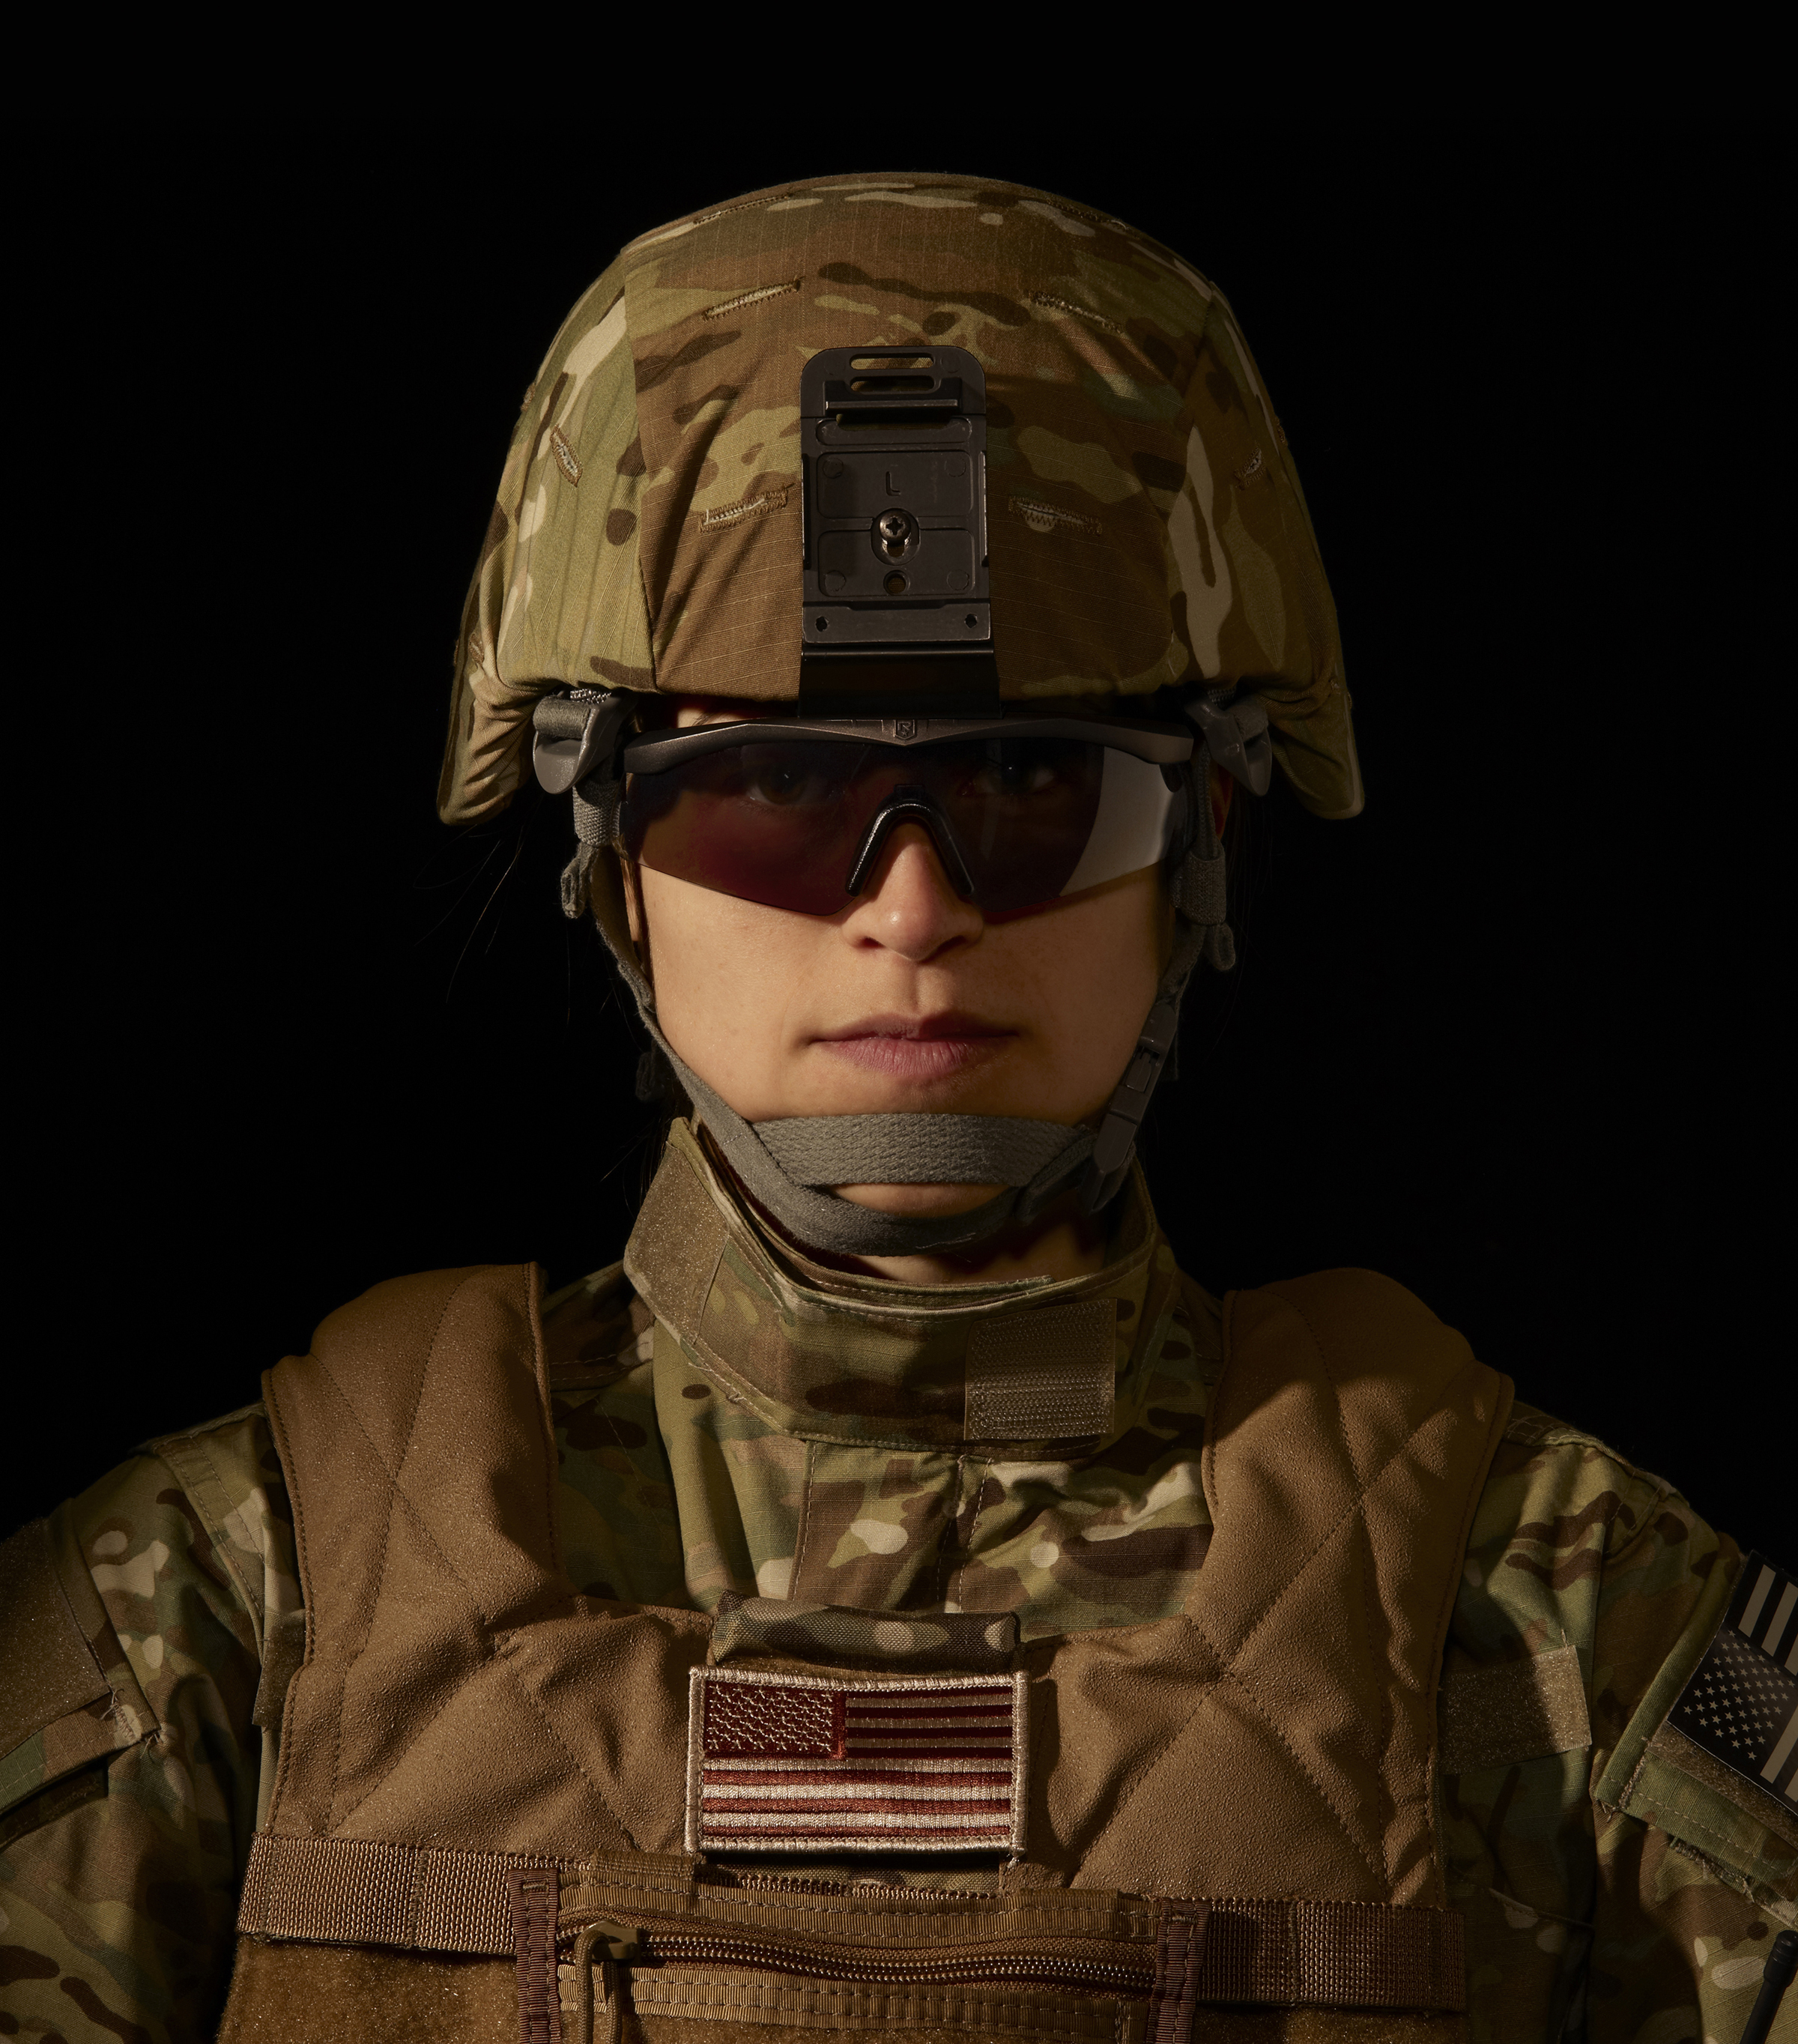 A female soldier wears the Sawfly Military Eyewear System in size Small. It has been specifically developed to follow the contours of smaller face proportions.